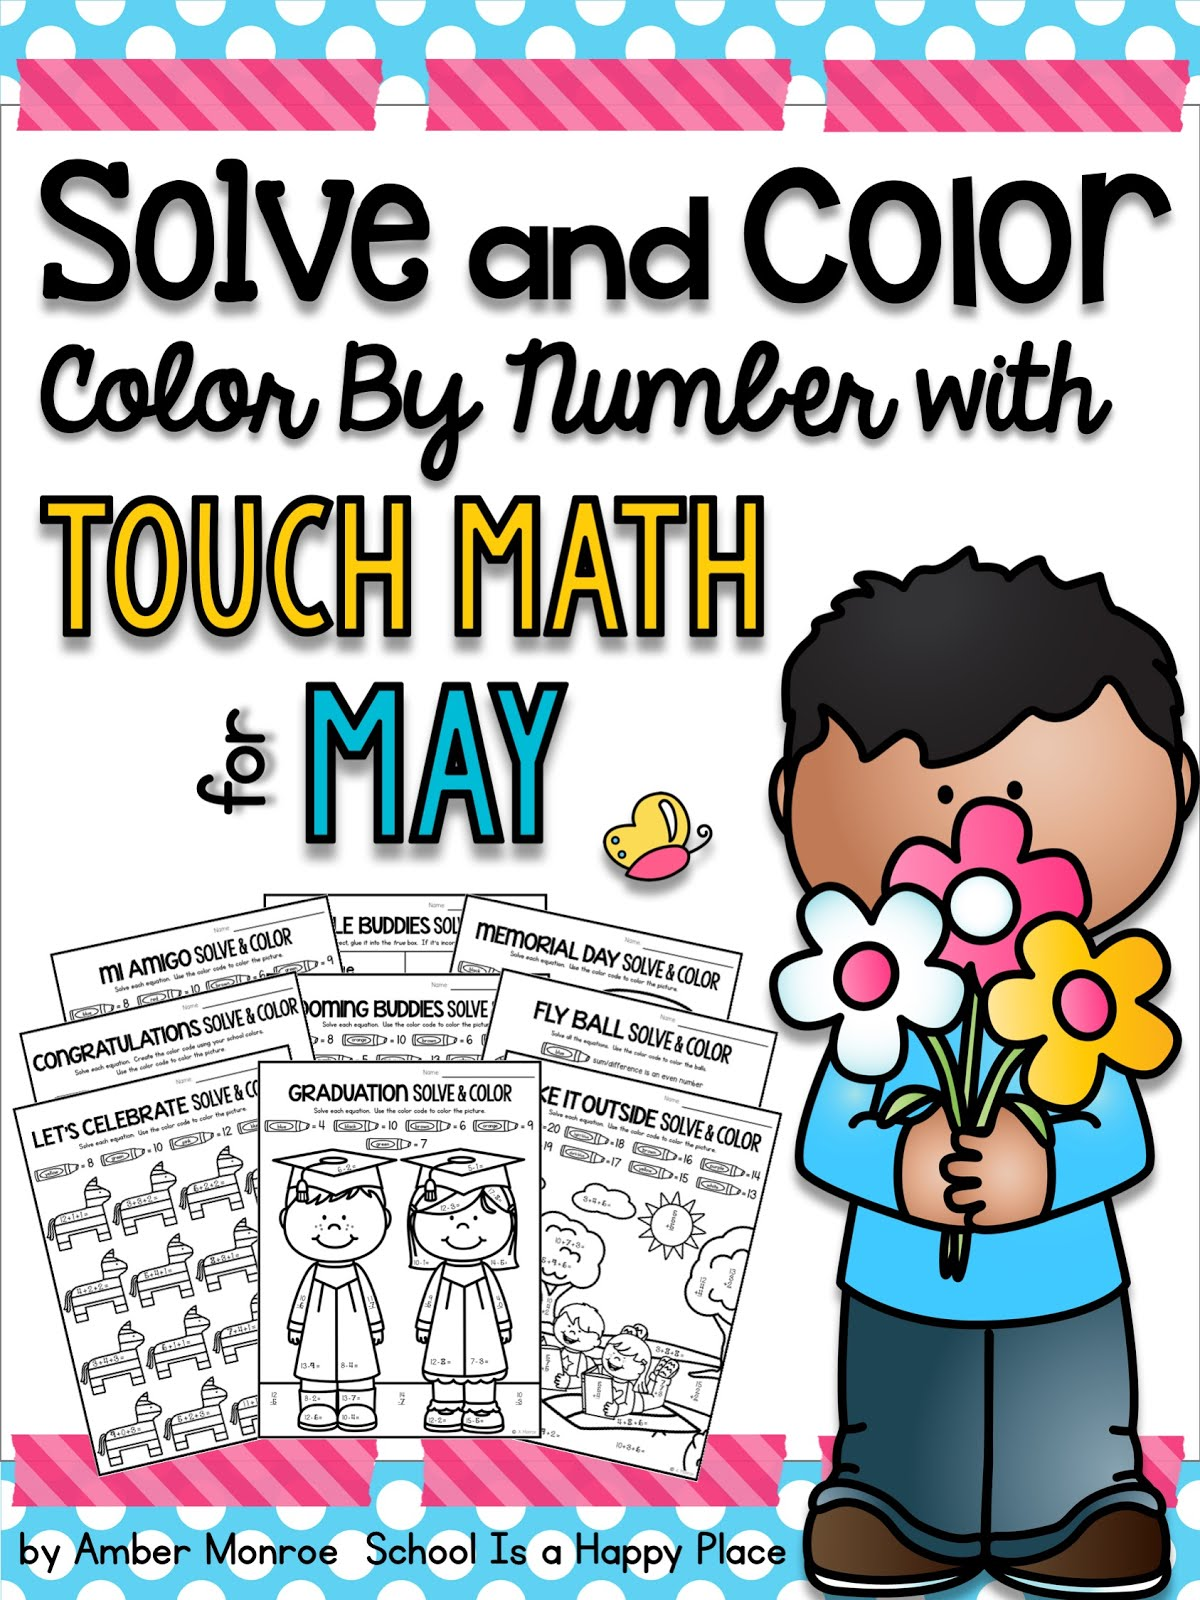 Touch Math Solve and Color for May